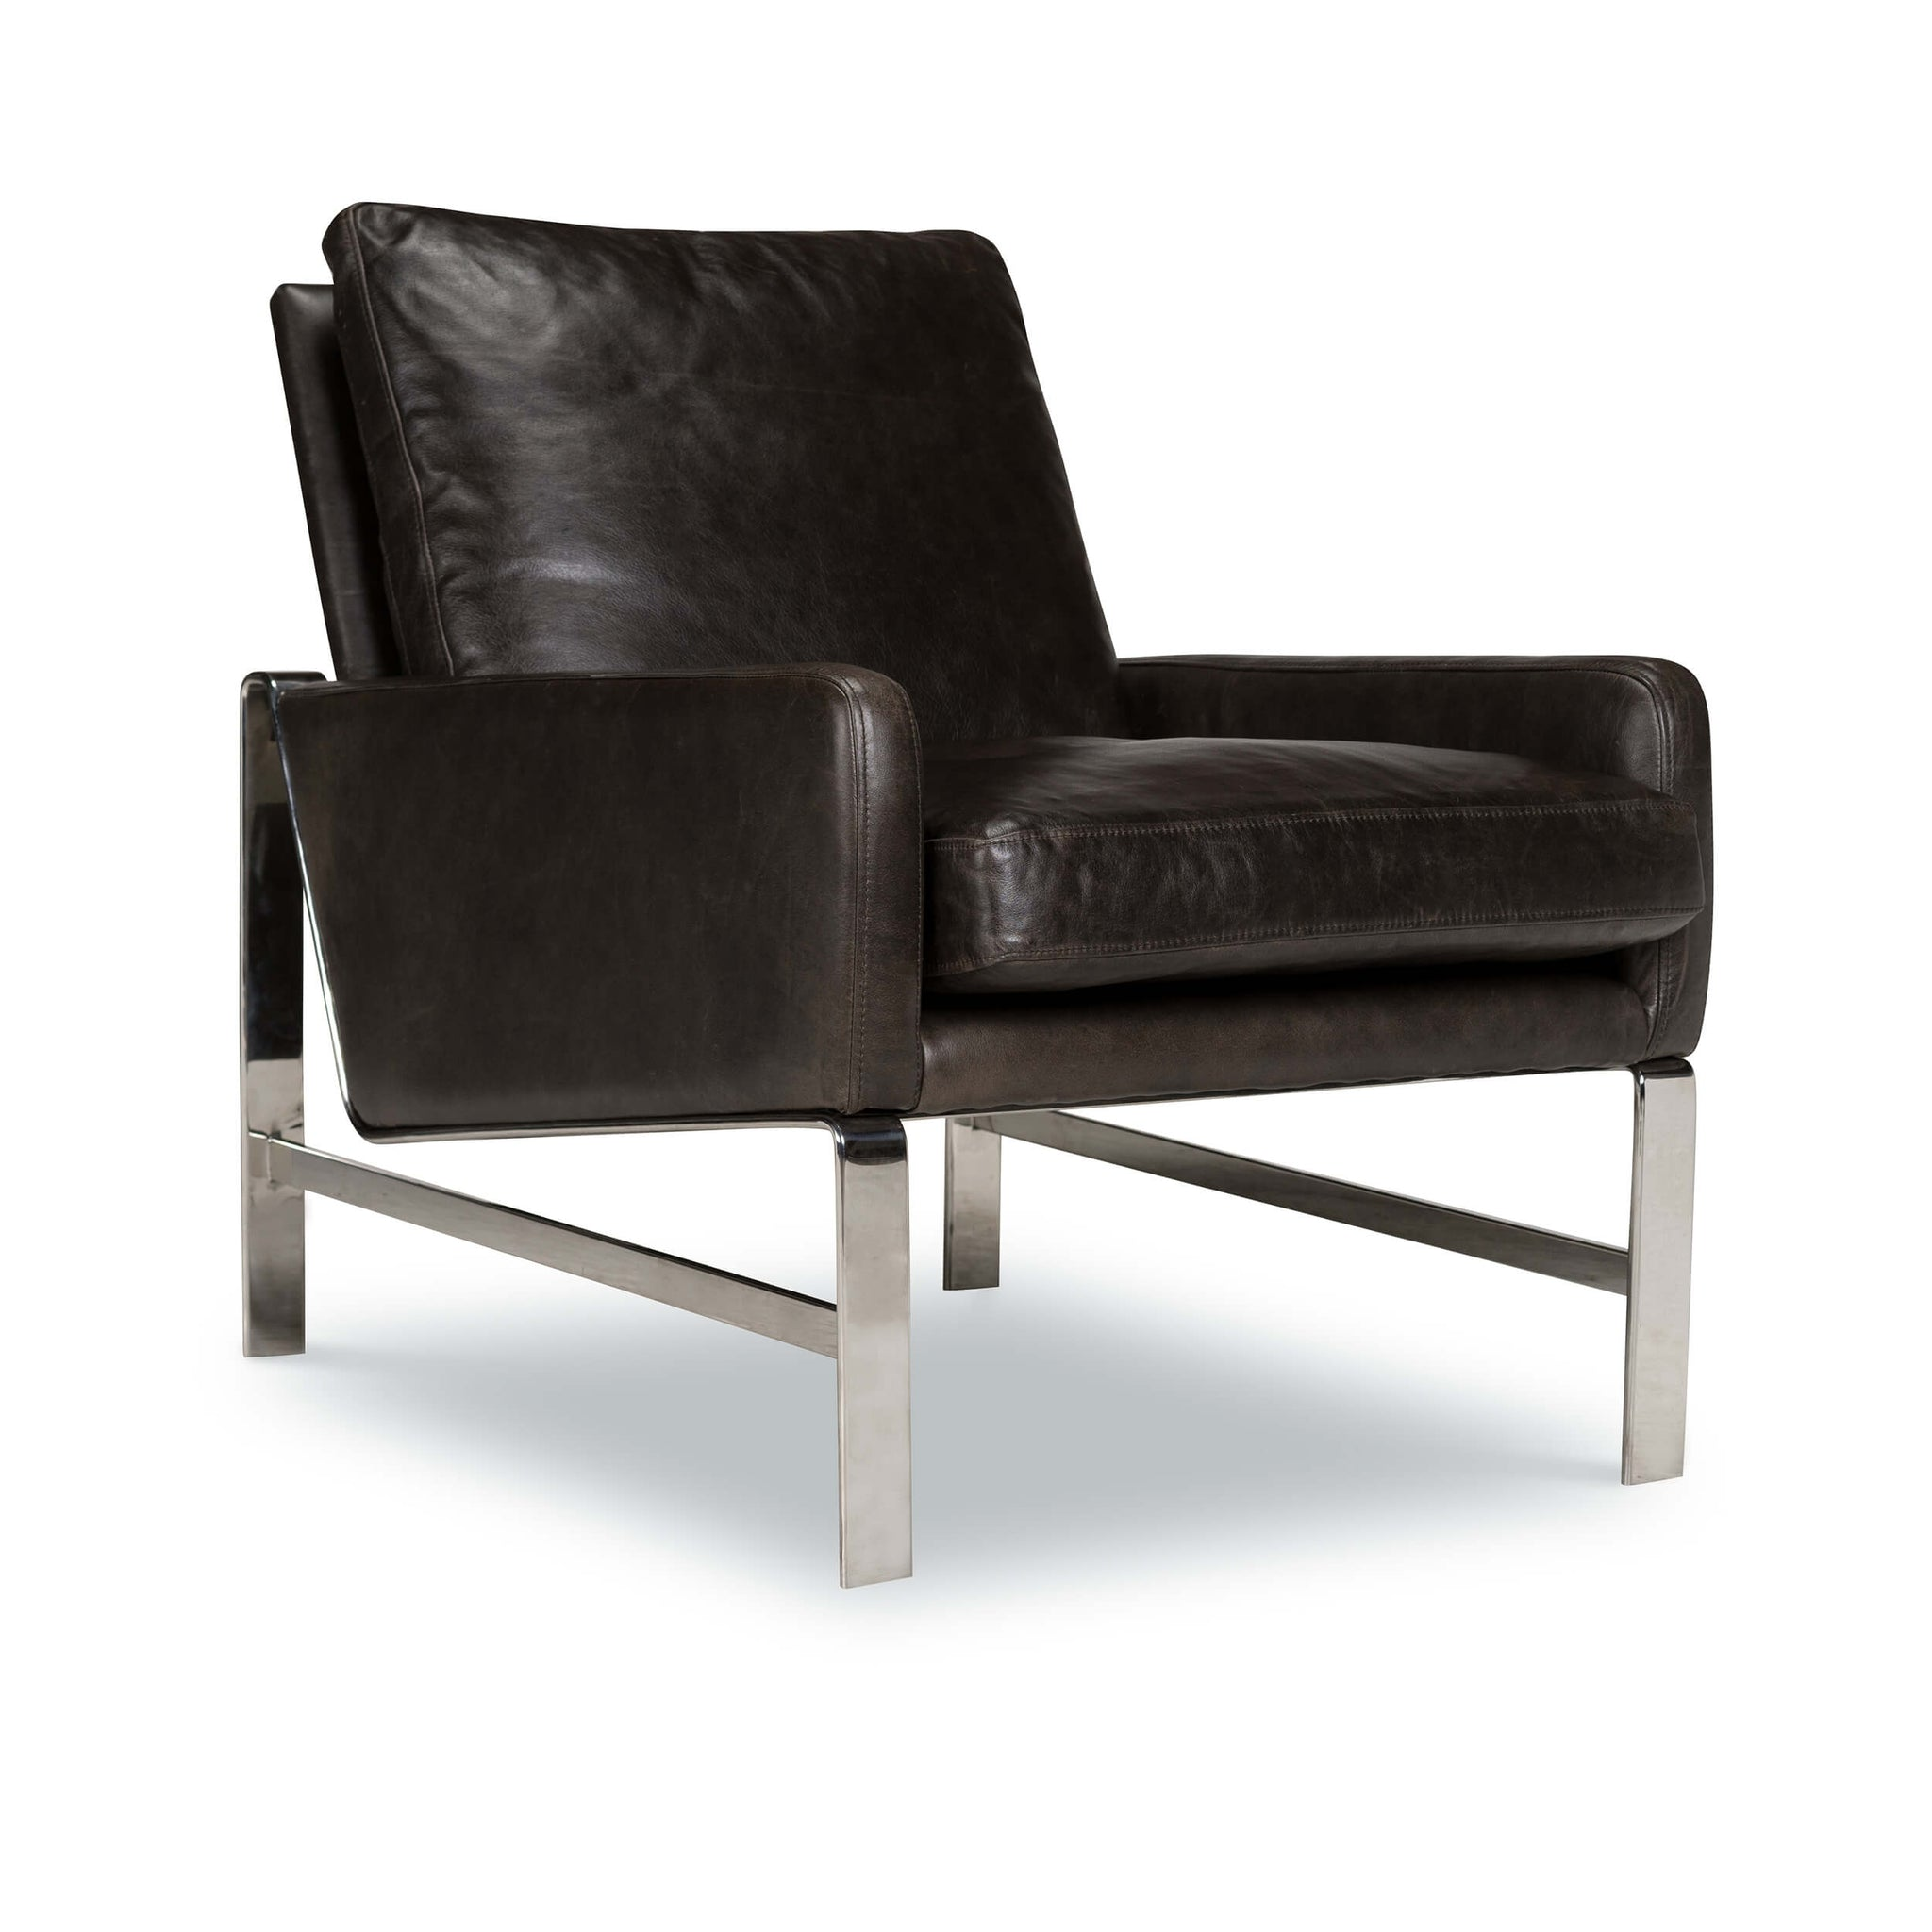 lucas world of furniture. LUCAS CHAIR Lucas World Of Furniture L